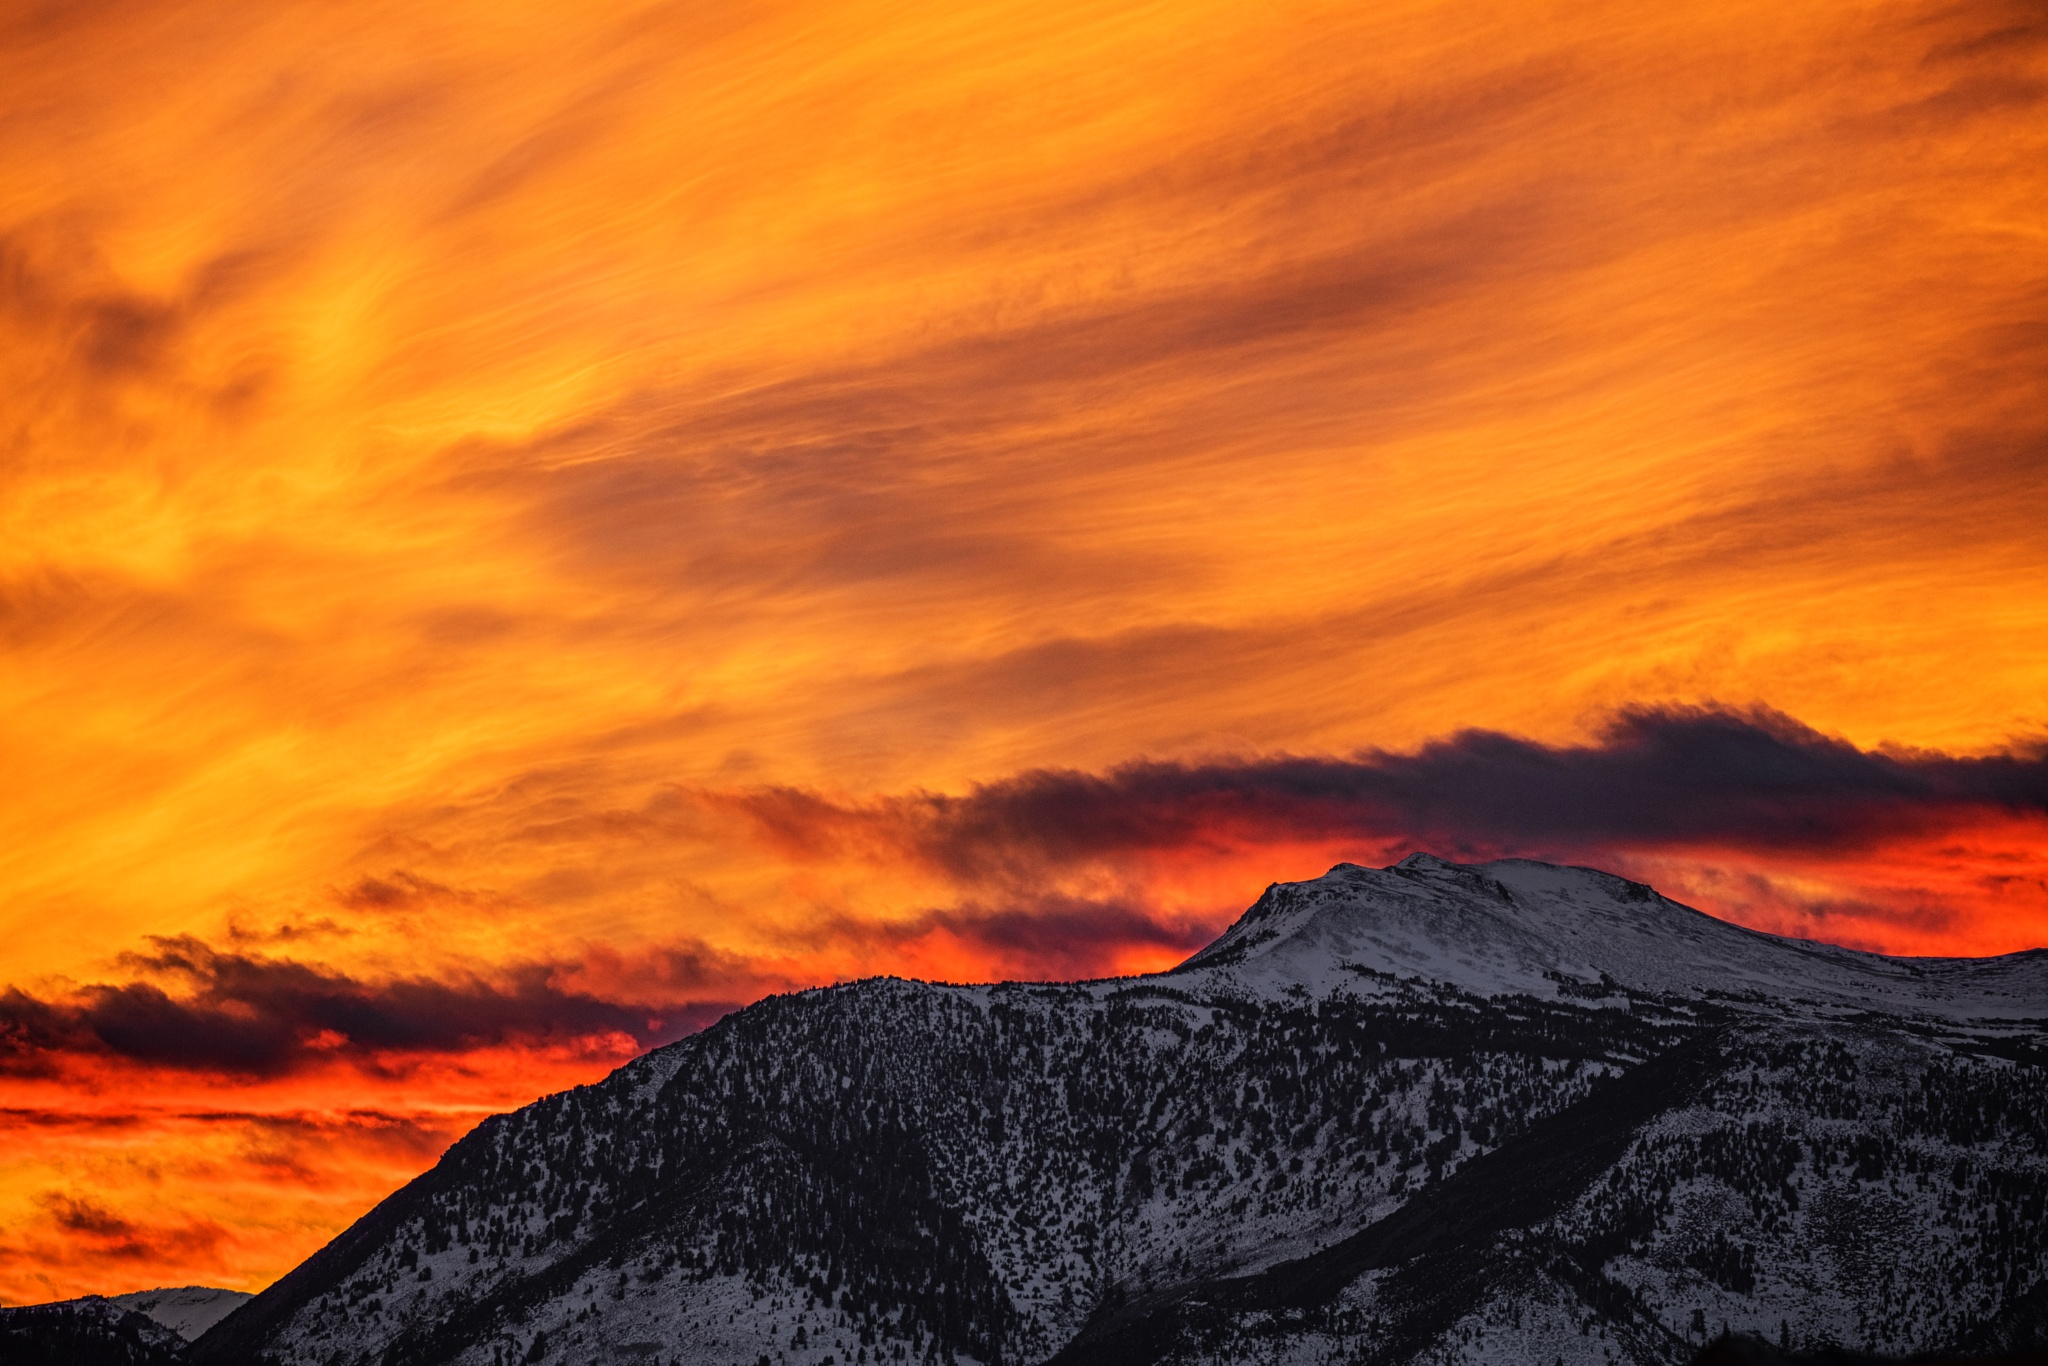 Mountain Sunset by Ed Stilwell